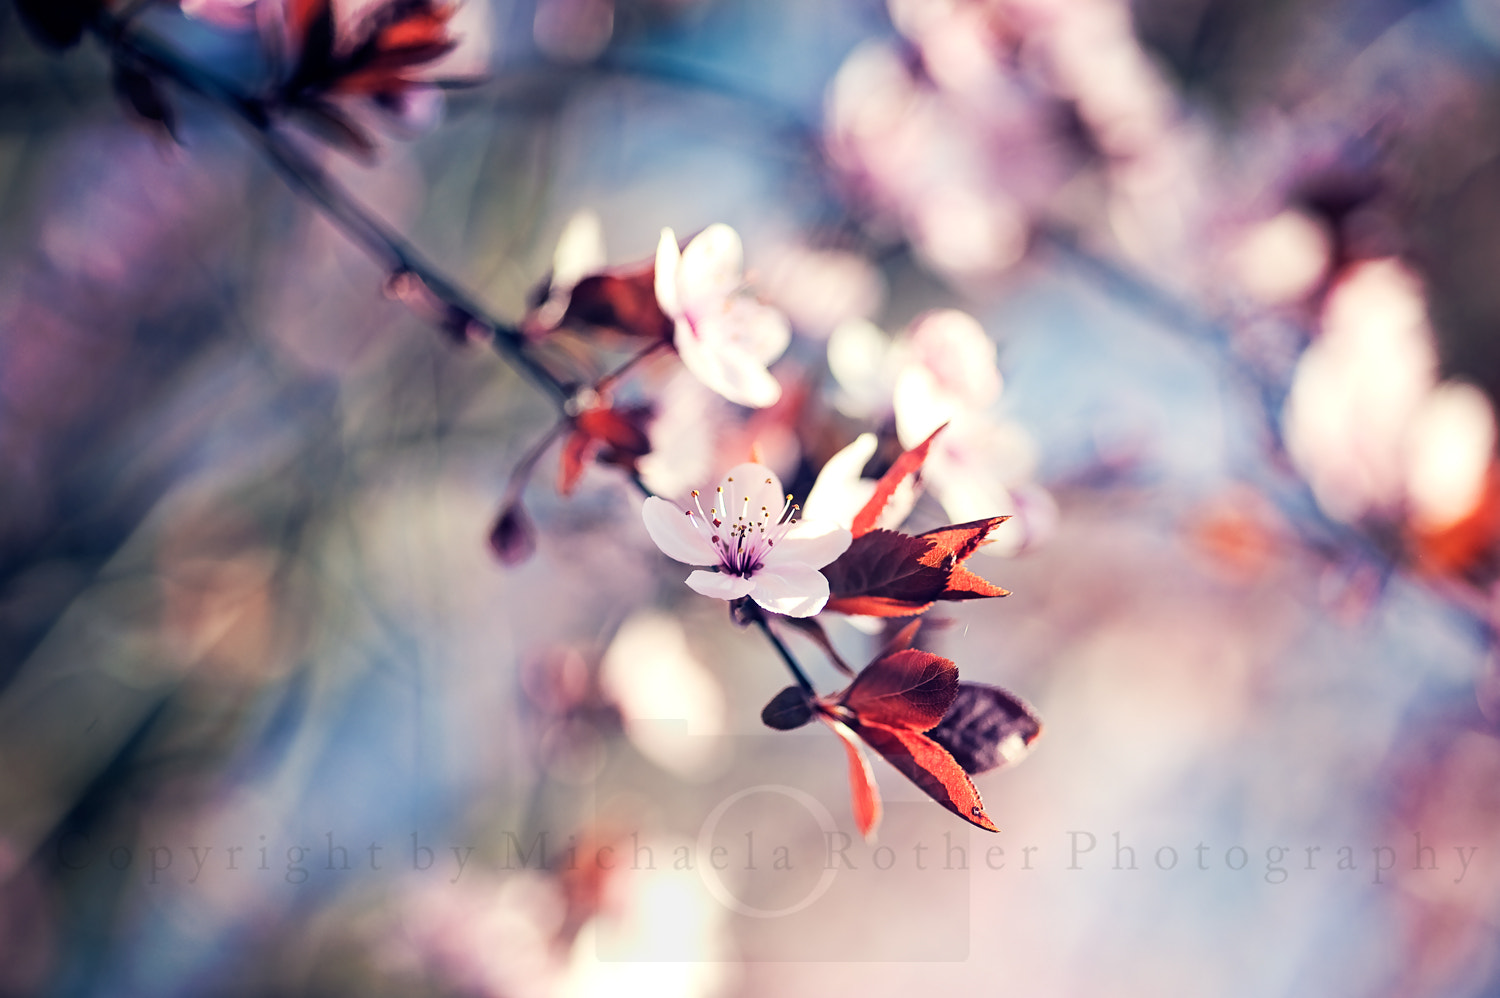 Photograph {L*O*V*E} by Michaela Rother on 500px